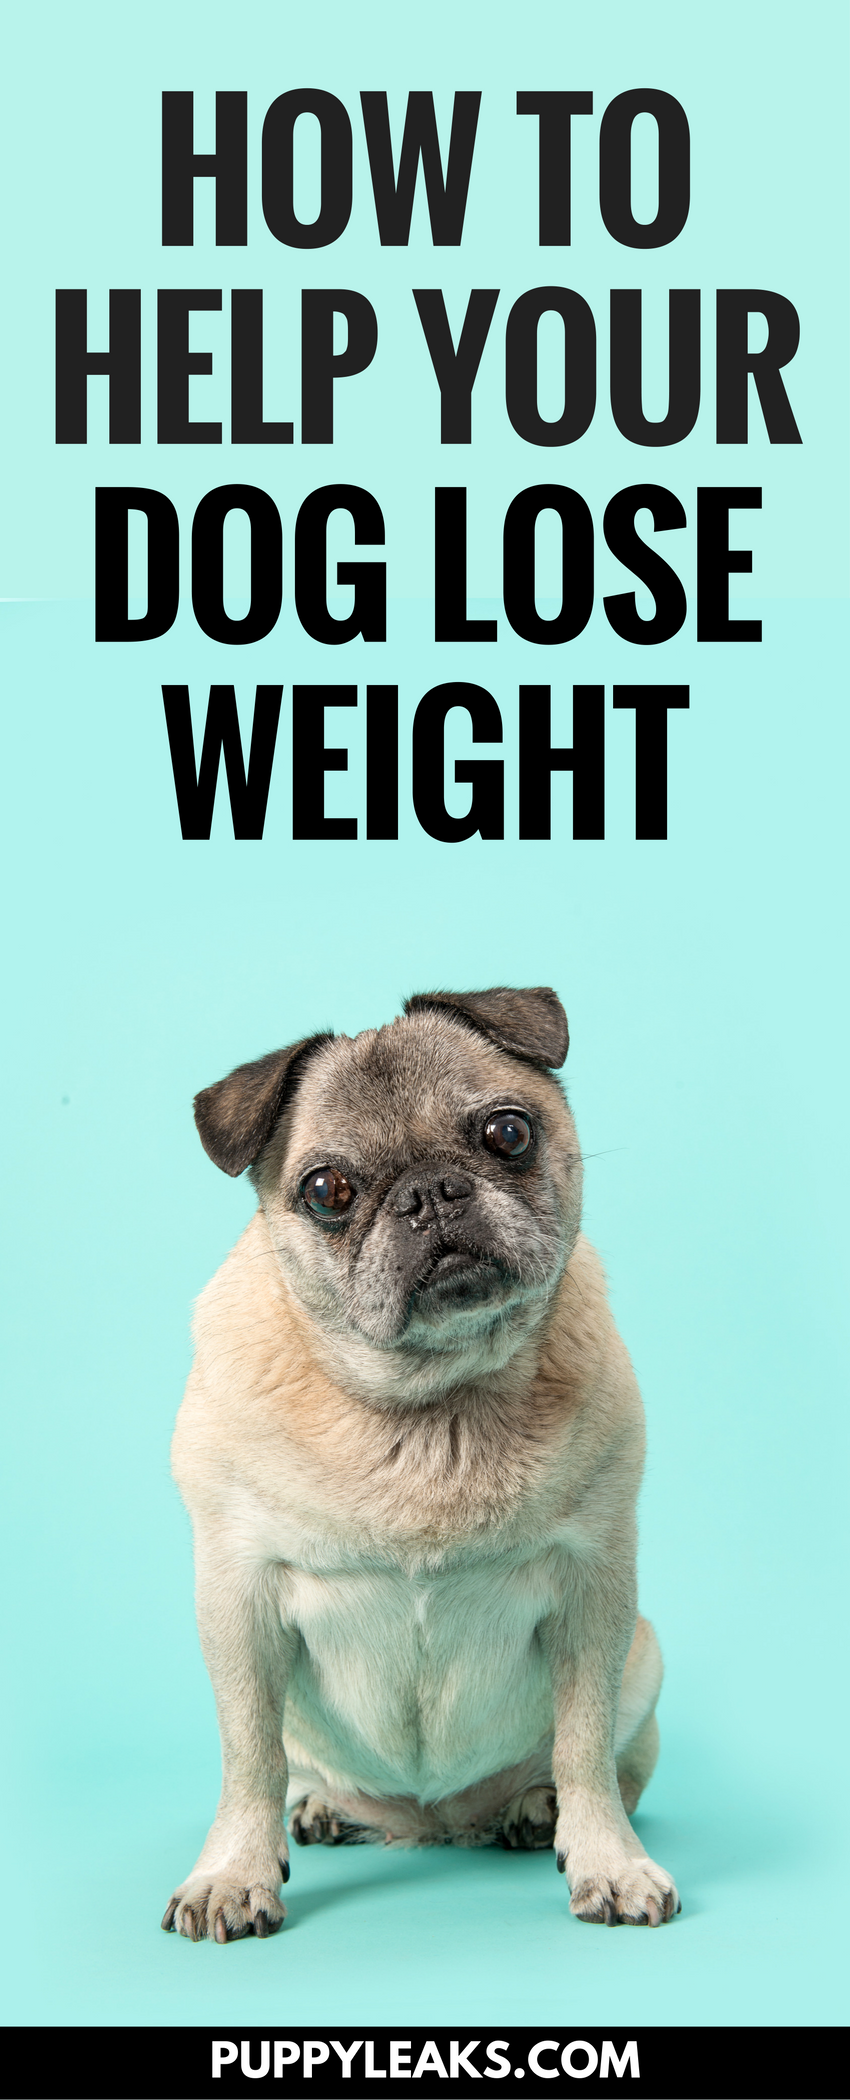 5 tips to help your dog lose weight | puppy leaks | pinterest | dogs